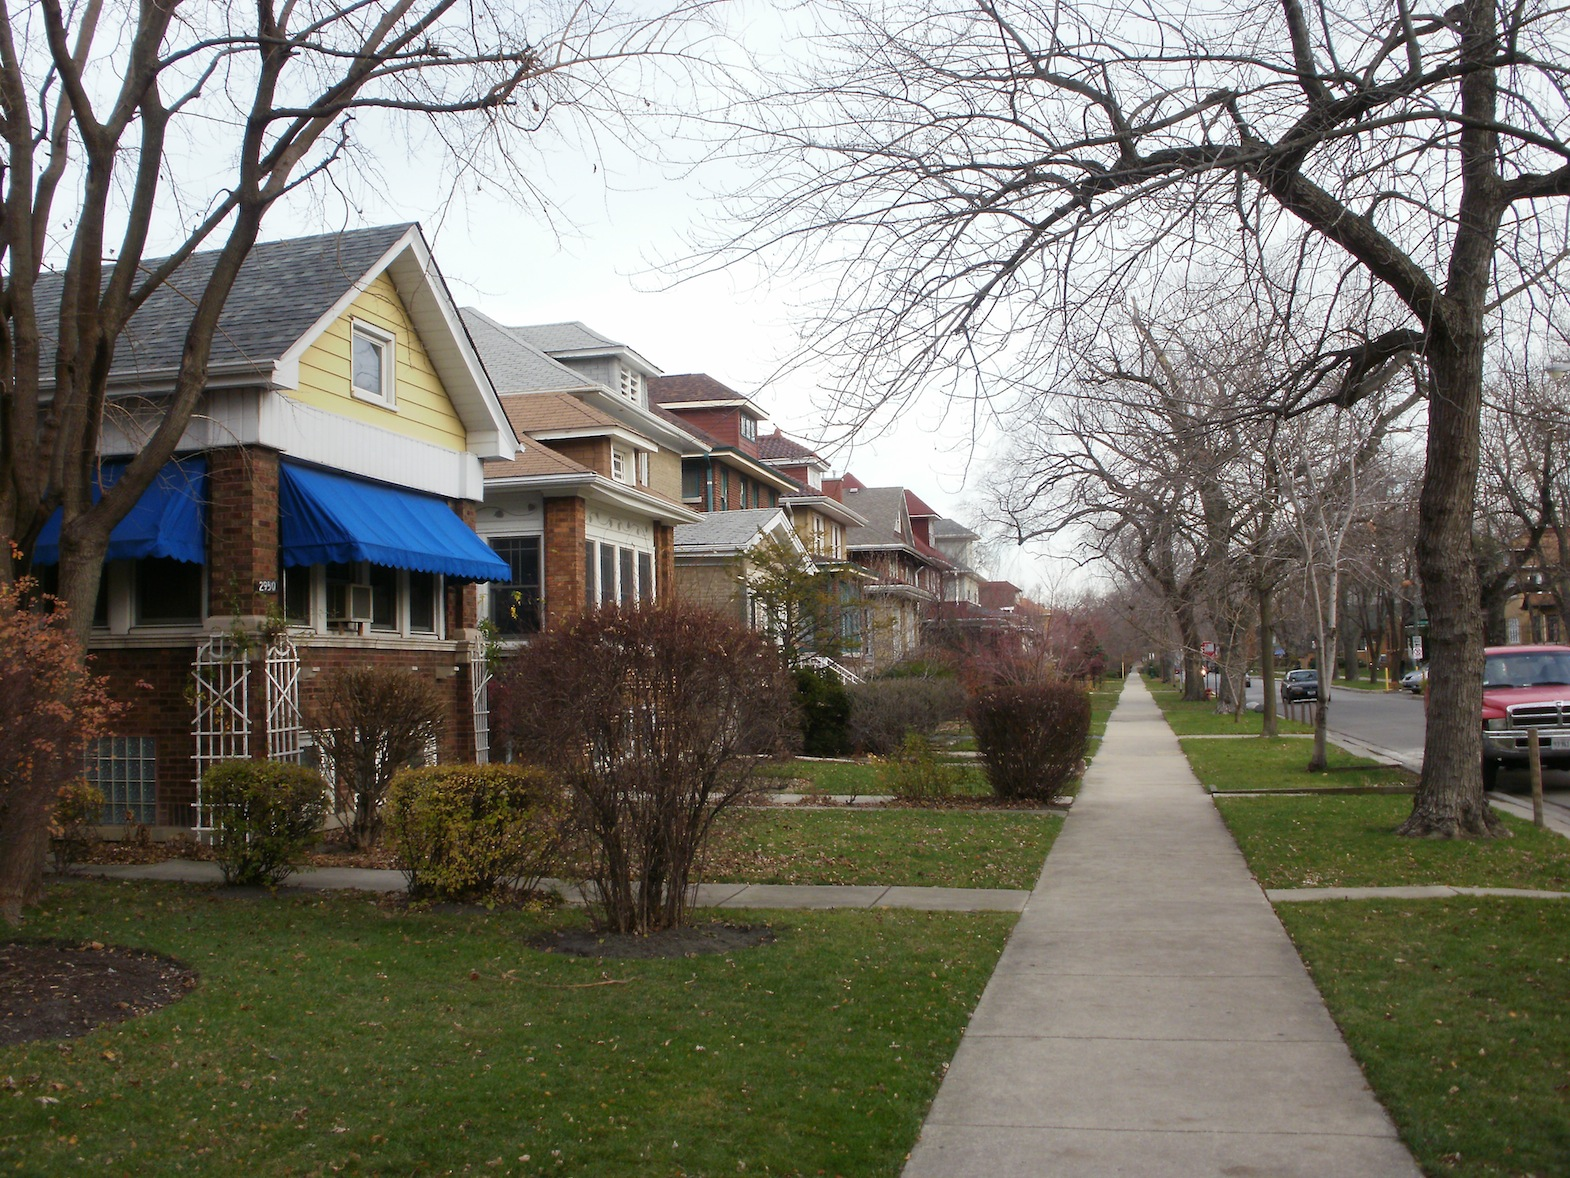 ravenswood personals Chicago's ravenswood neighborhood is popular  chicago: a family neighborhood with old world  their families as well as the singles set who are.